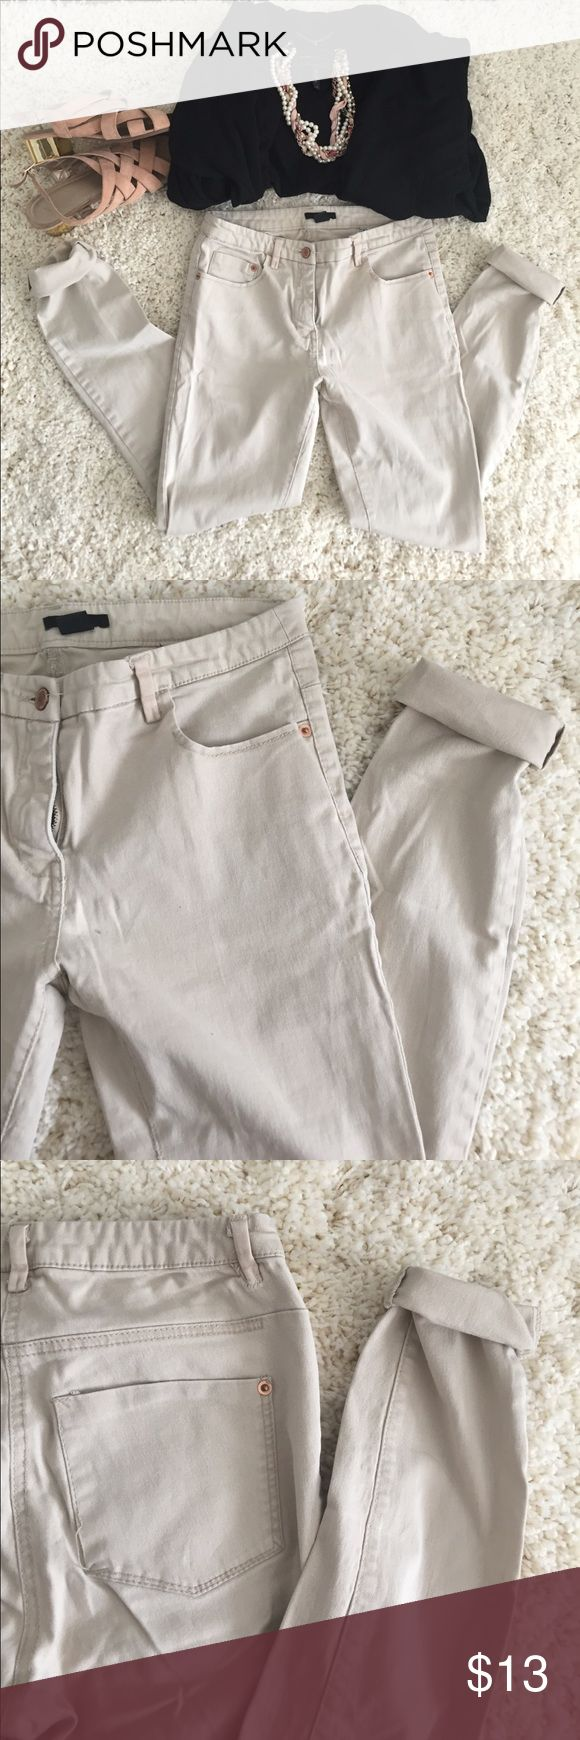 """H&M • tan skinny jeans H&M • tan skinny jeans. US size 6. Waist measures 14"""". 97% Cotton. Slightly stretchy. One minor defect is loose stitching on rear pocket (as photoed). All items photoed are for sale, if you don't see a listing just ask! H&M Jeans Skinny"""